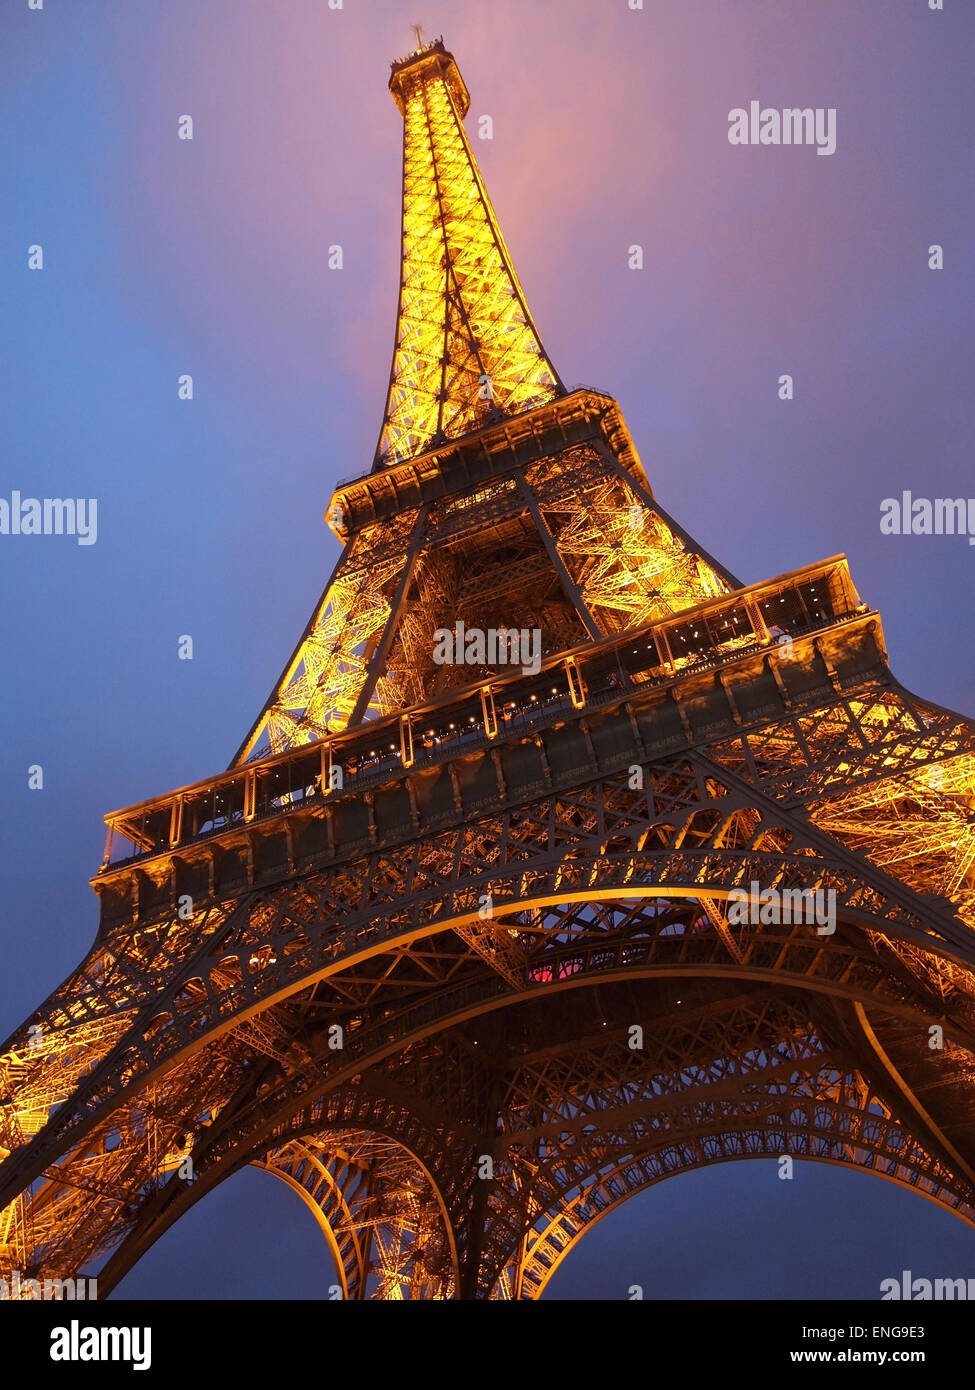 The Eiffel tower in Paris, France, illuminated with the top in the clouds mist fog - Stock Image